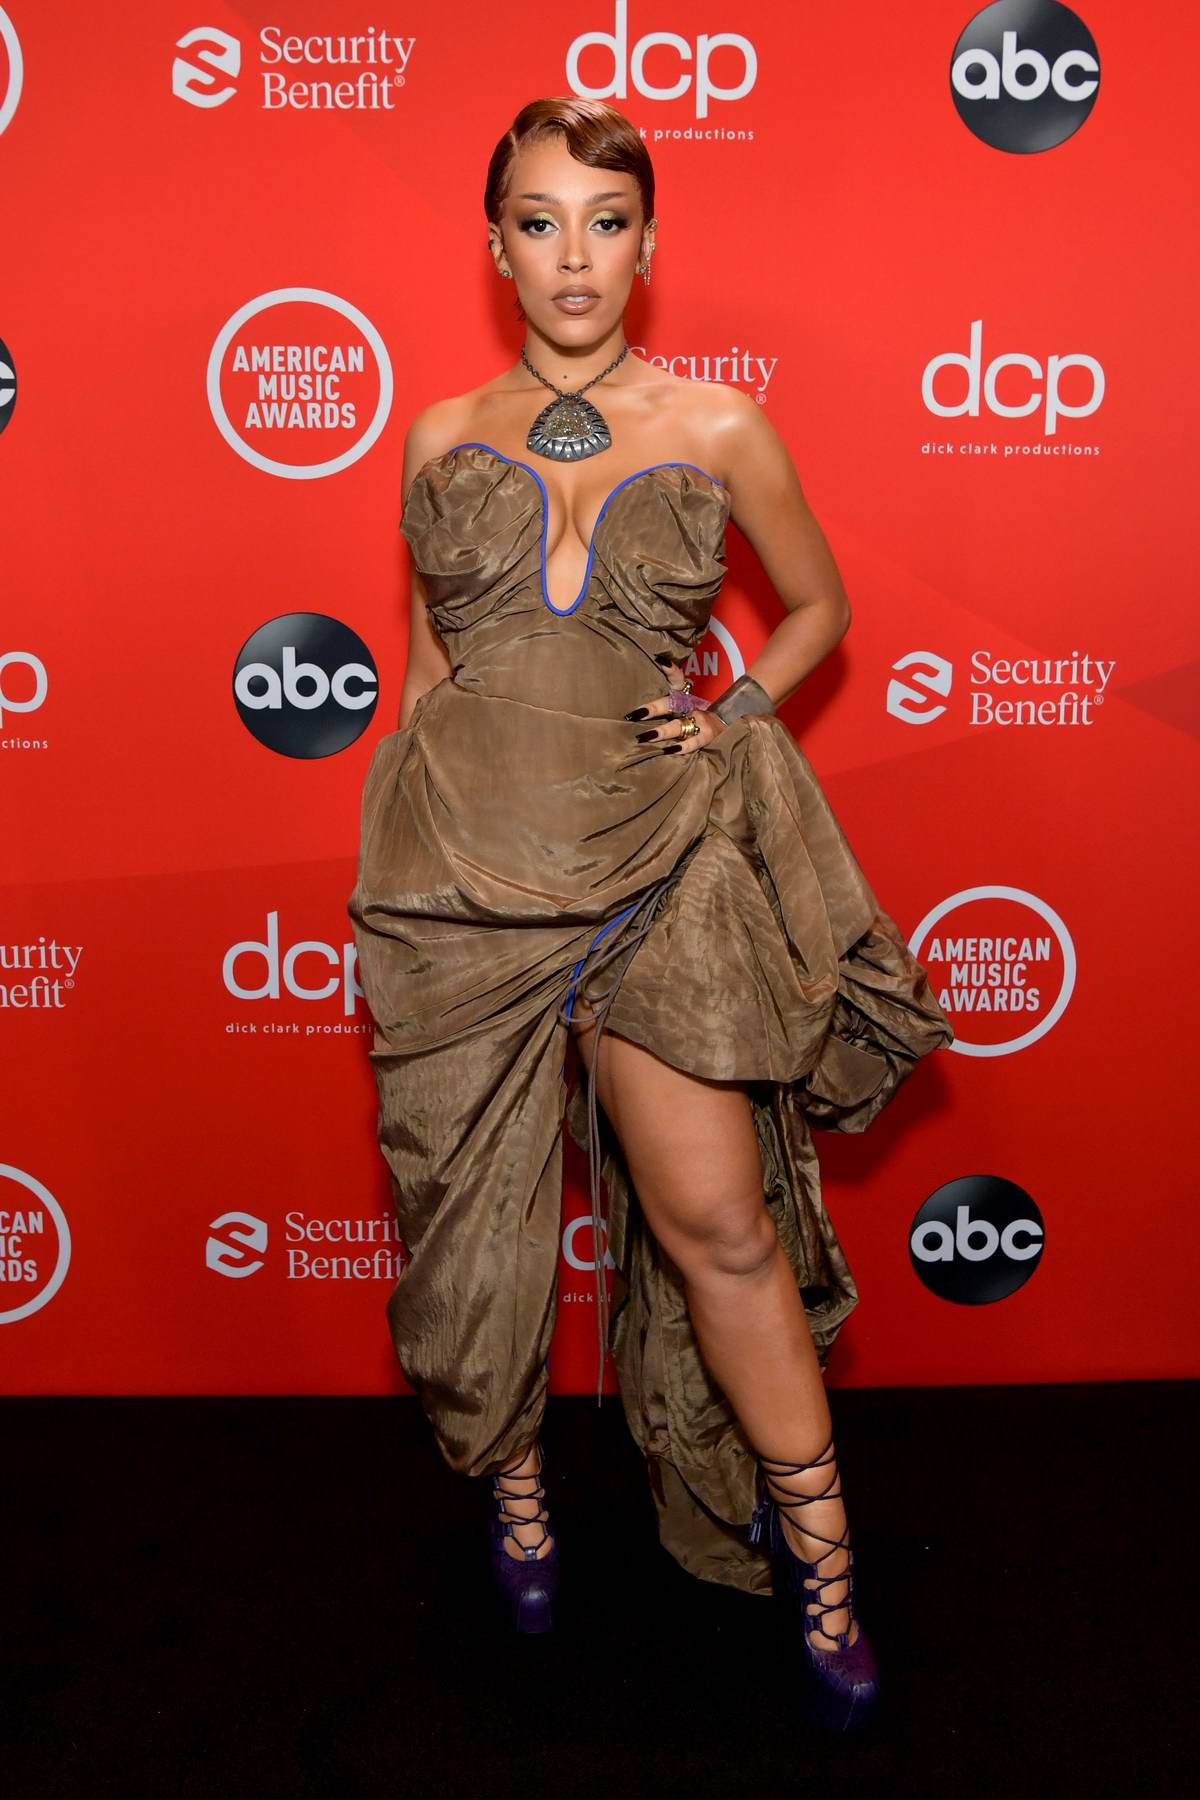 Doja Cat attends the 2020 American Music Awards at the Microsoft Theater in Los Angeles